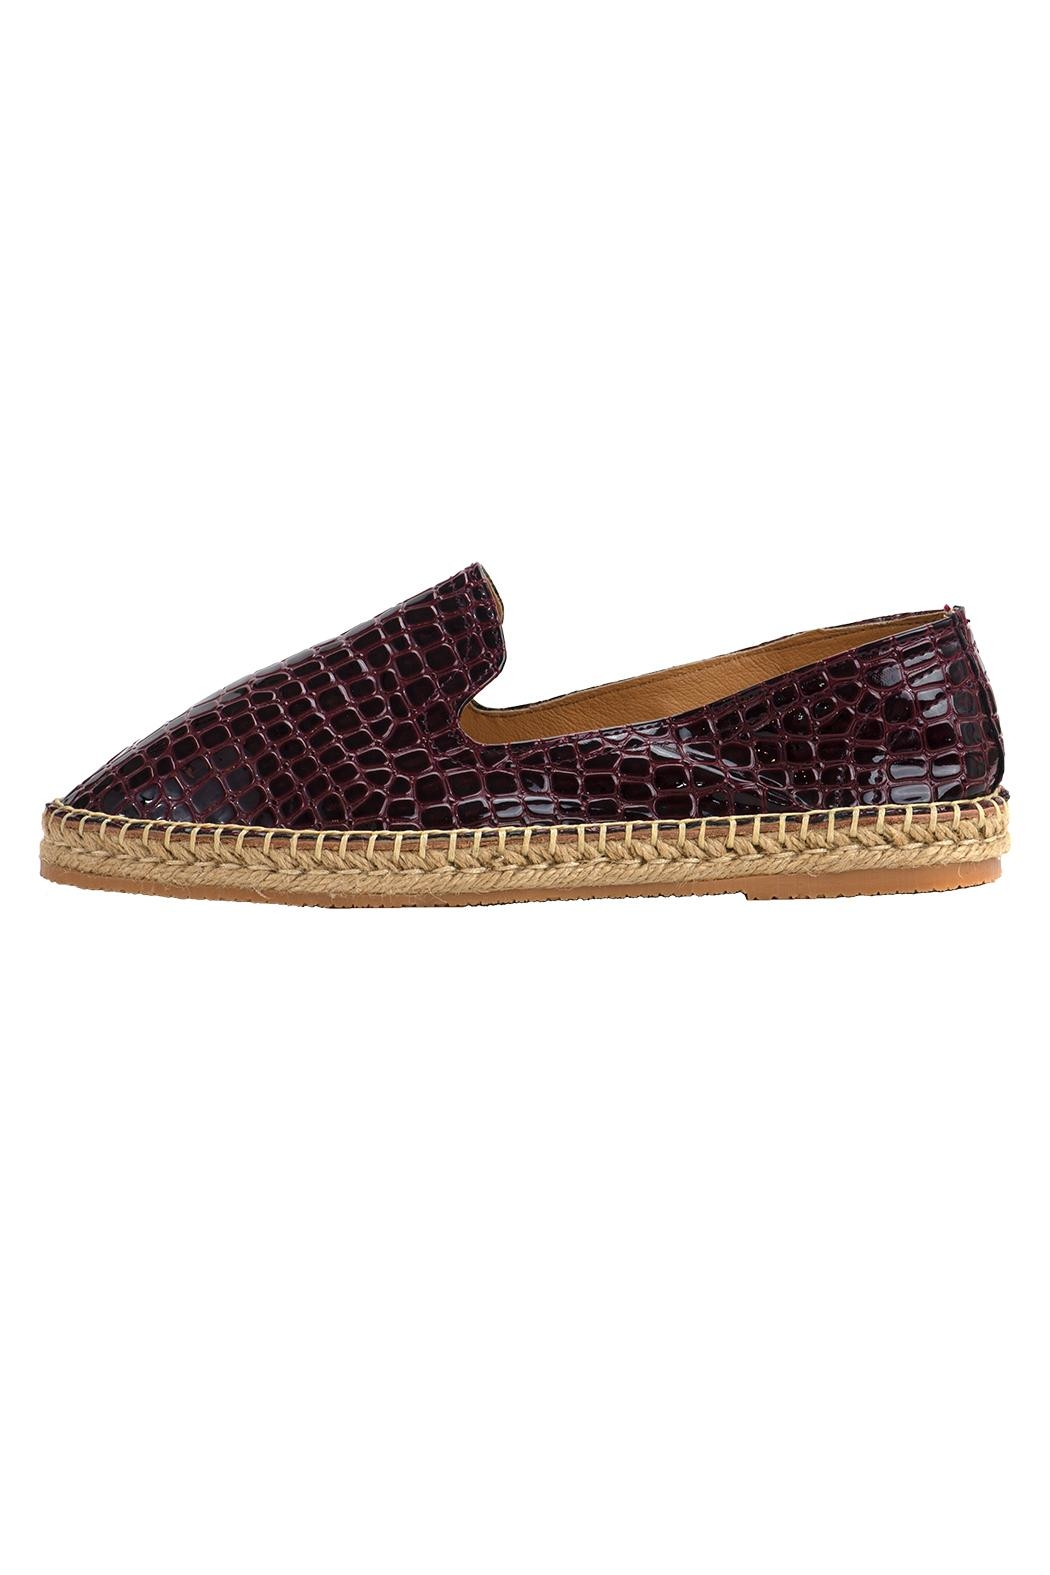 Morkas Shoes Slipper Wine Croco - Front Full Image